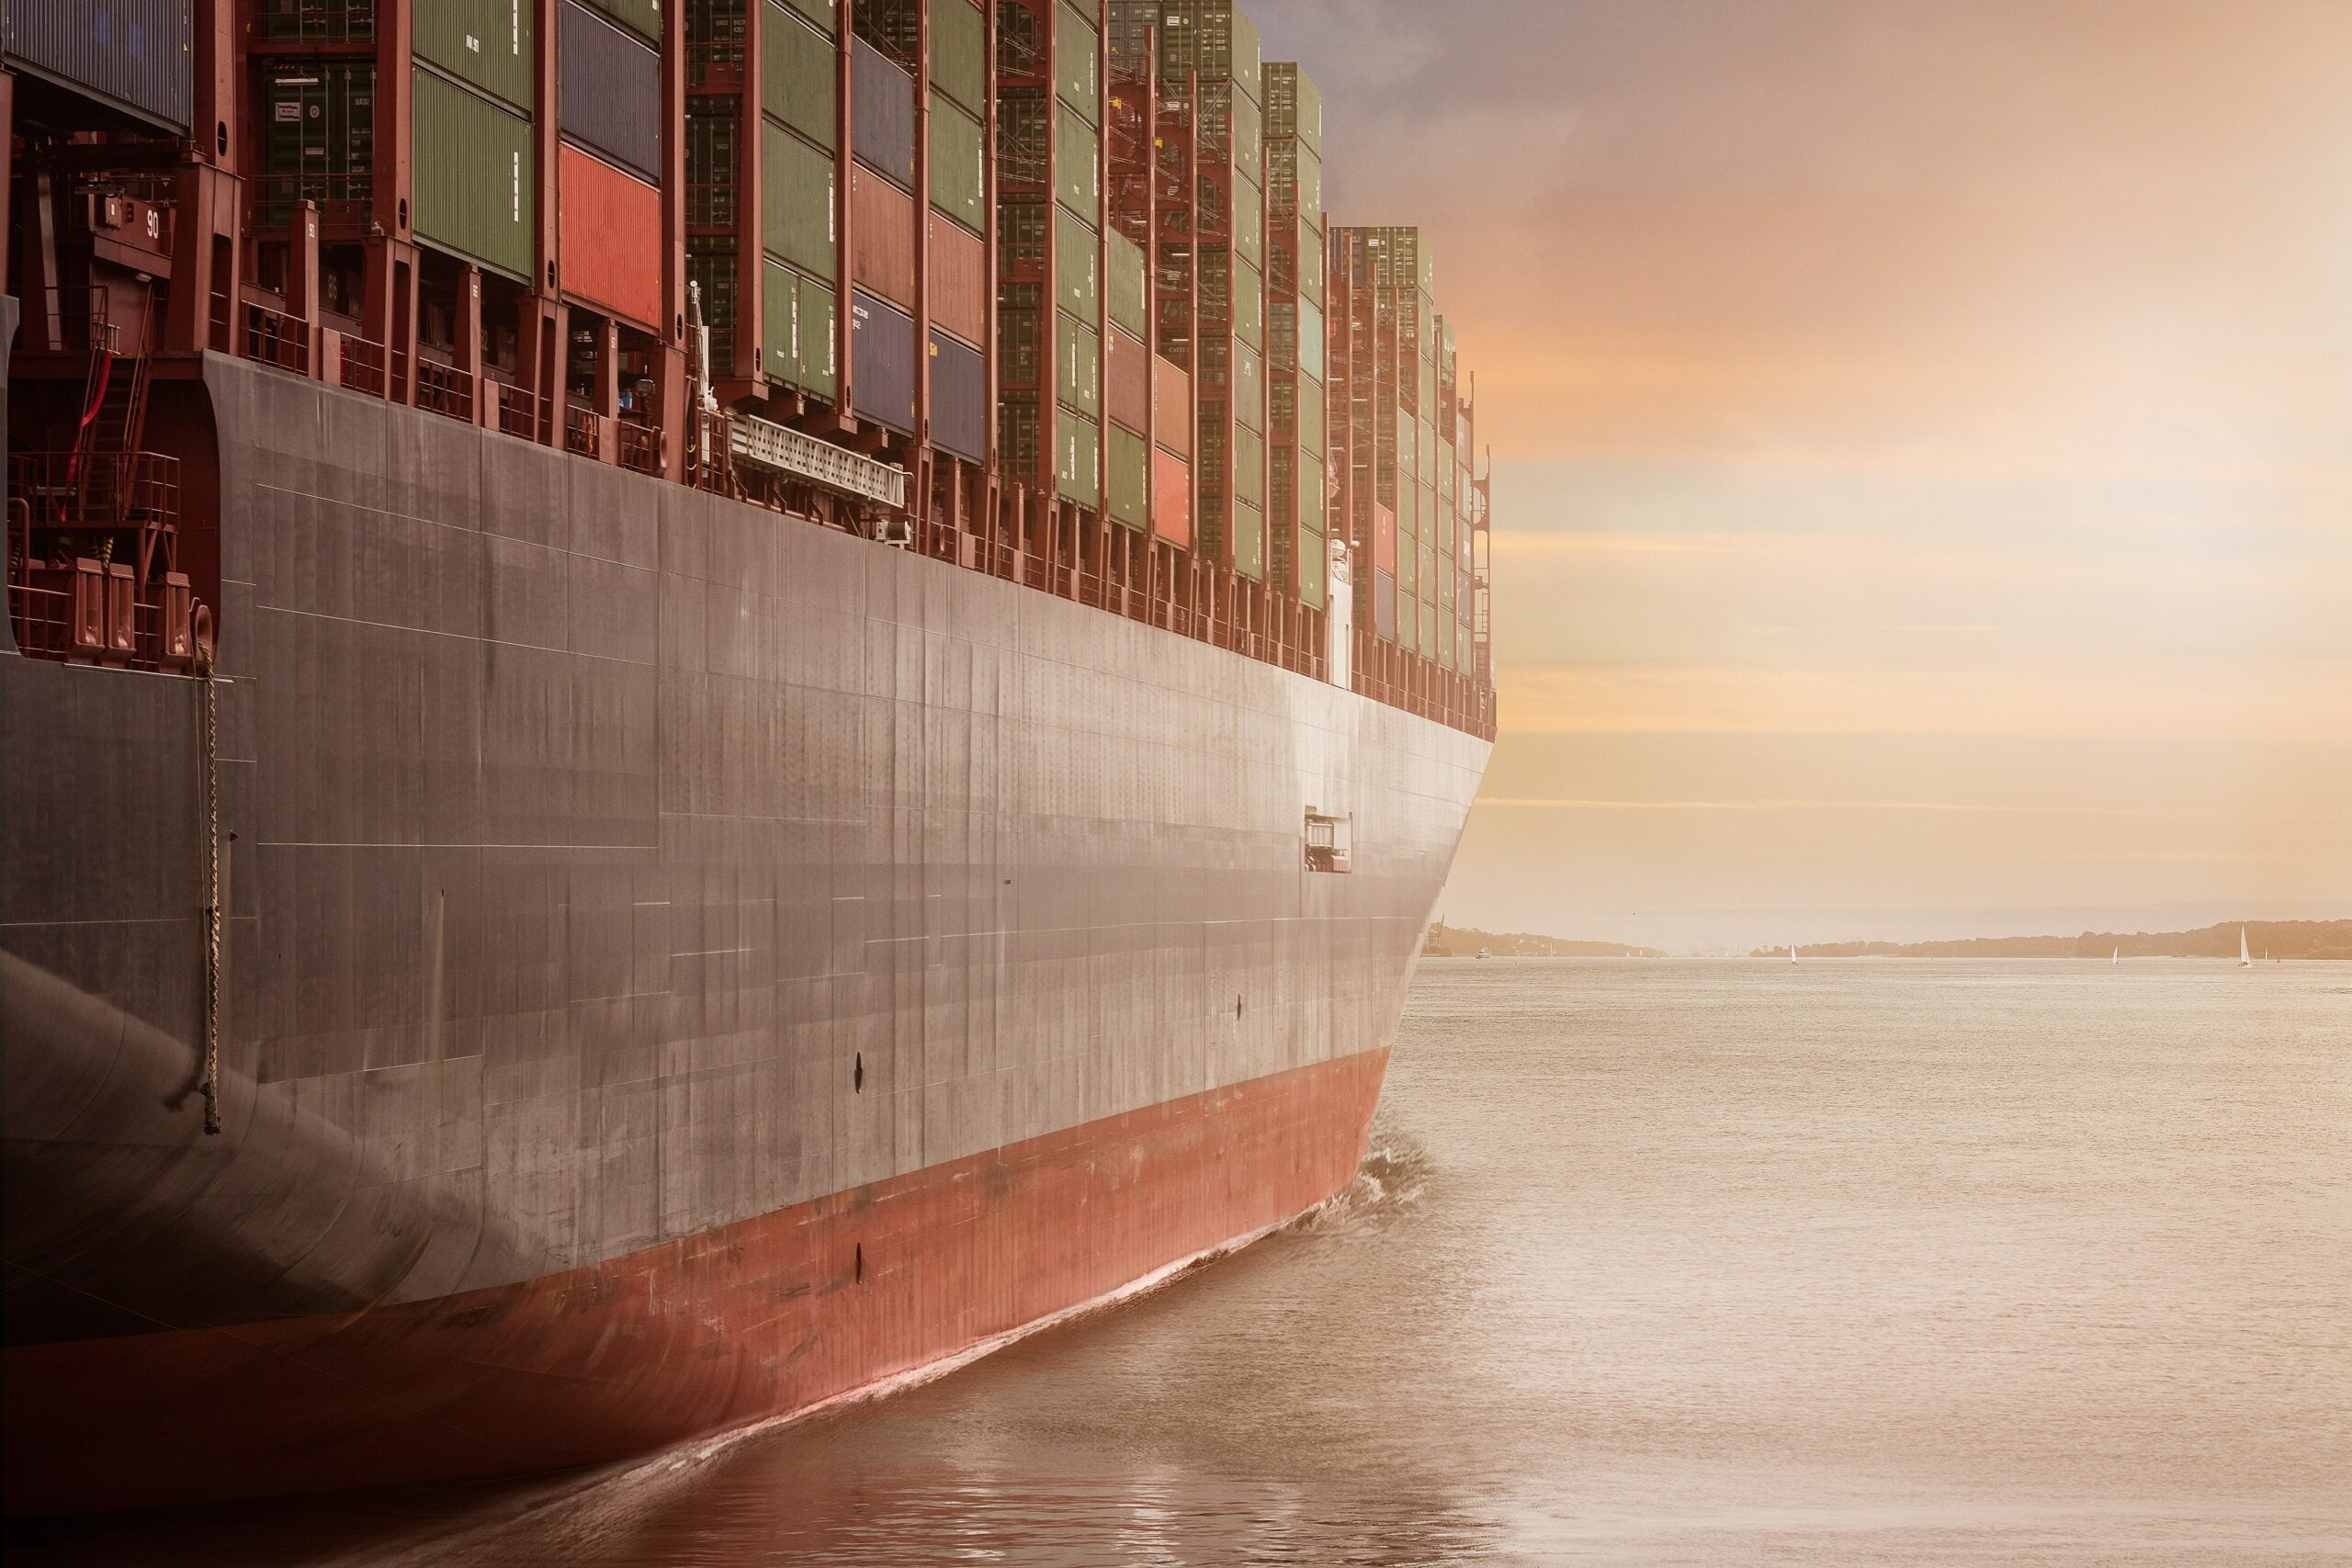 Your lost shipment could be trashing a beach thousands of miles away